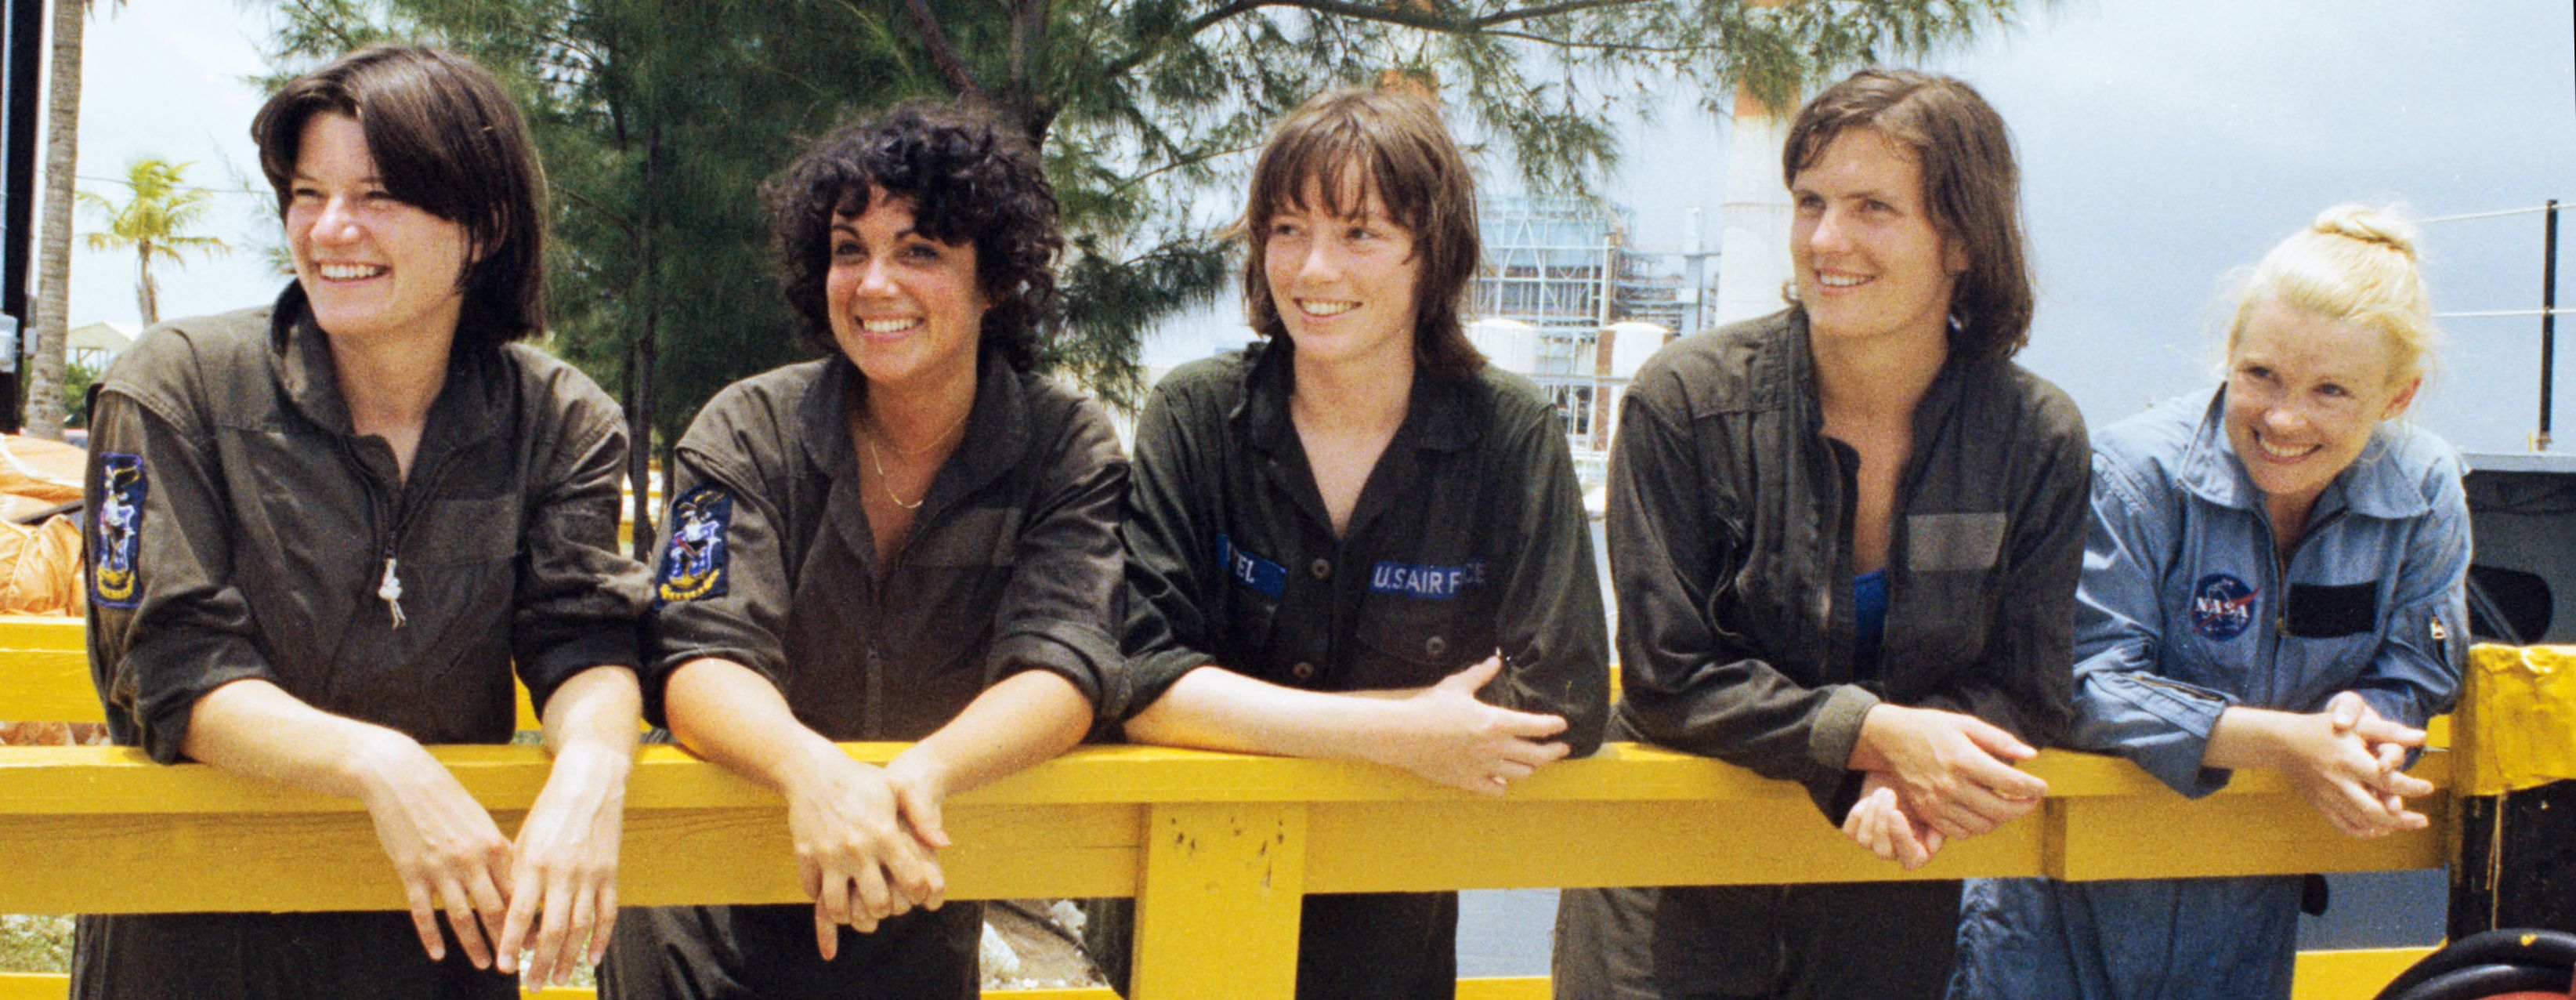 Sally Ride (left) with four other astronaut candidates took a break in during water survival training in 1978. Photo NASA.